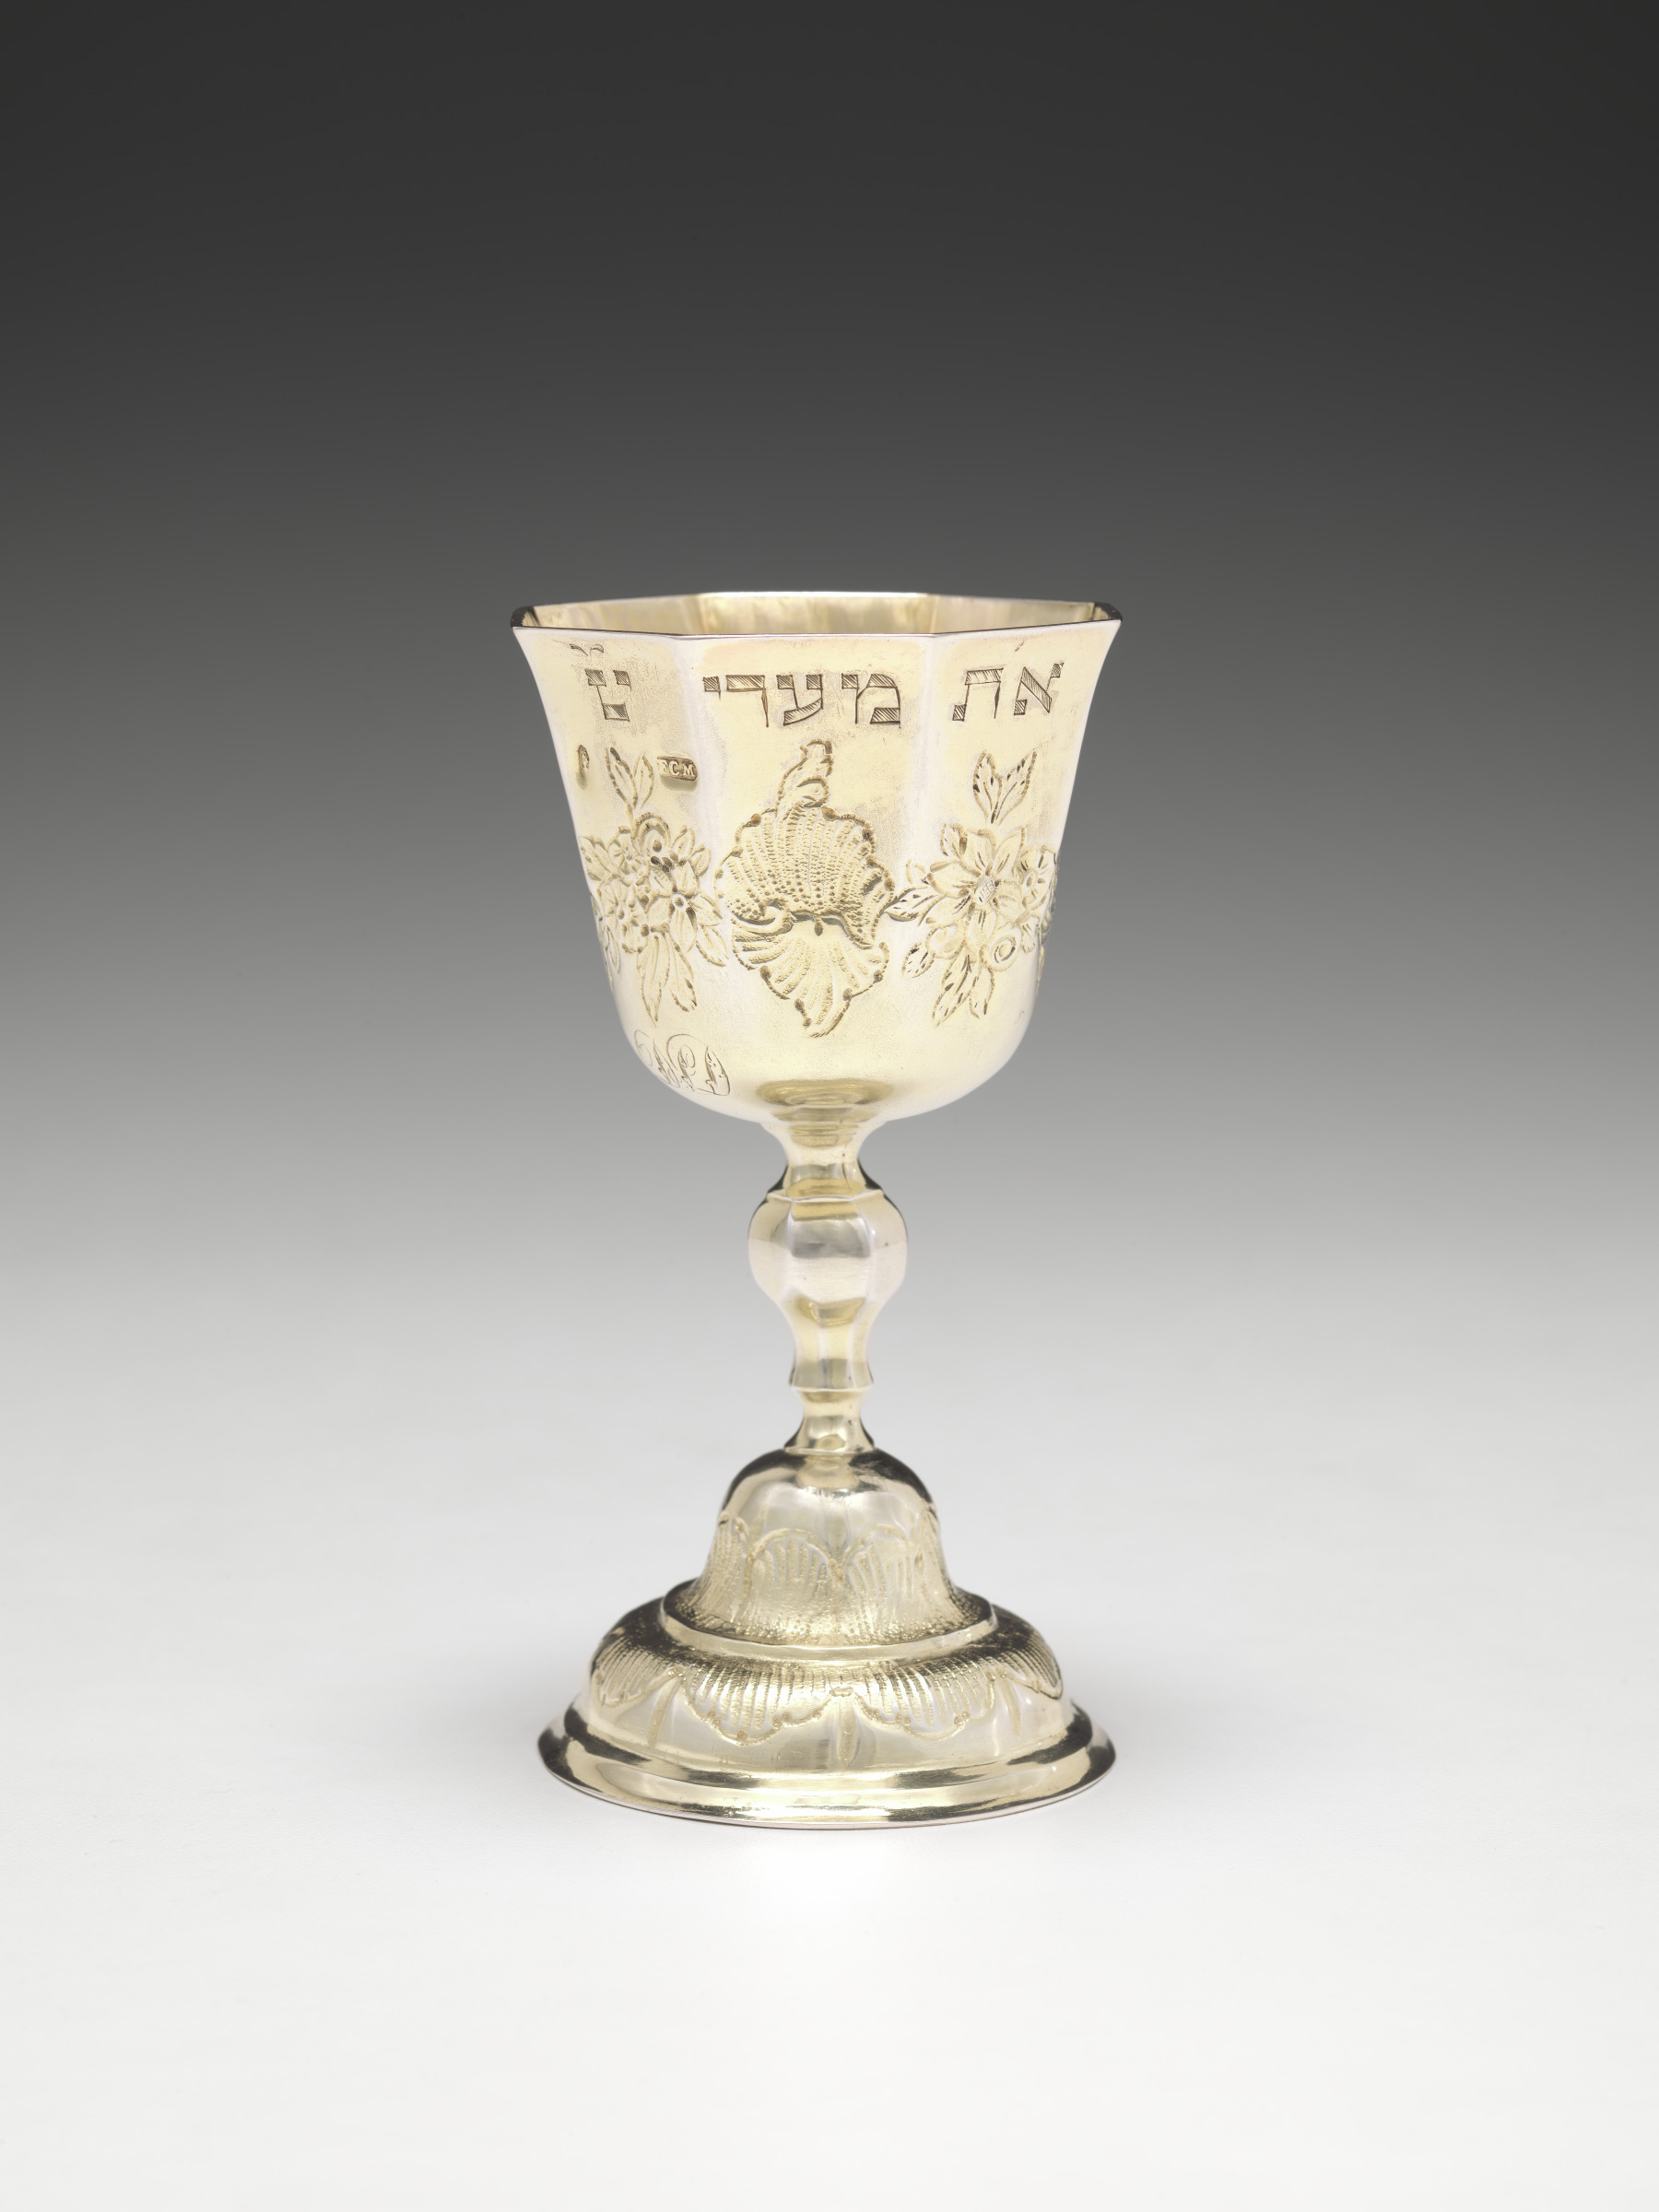 Franz Christoph Mederle,   Kiddush Cup,  ca. 1740  Silver-gilt, Virginia Museum of Fine Arts, Ailsa Mellon Bruce Fund for Decorative Arts  Image courtesy of VMFA